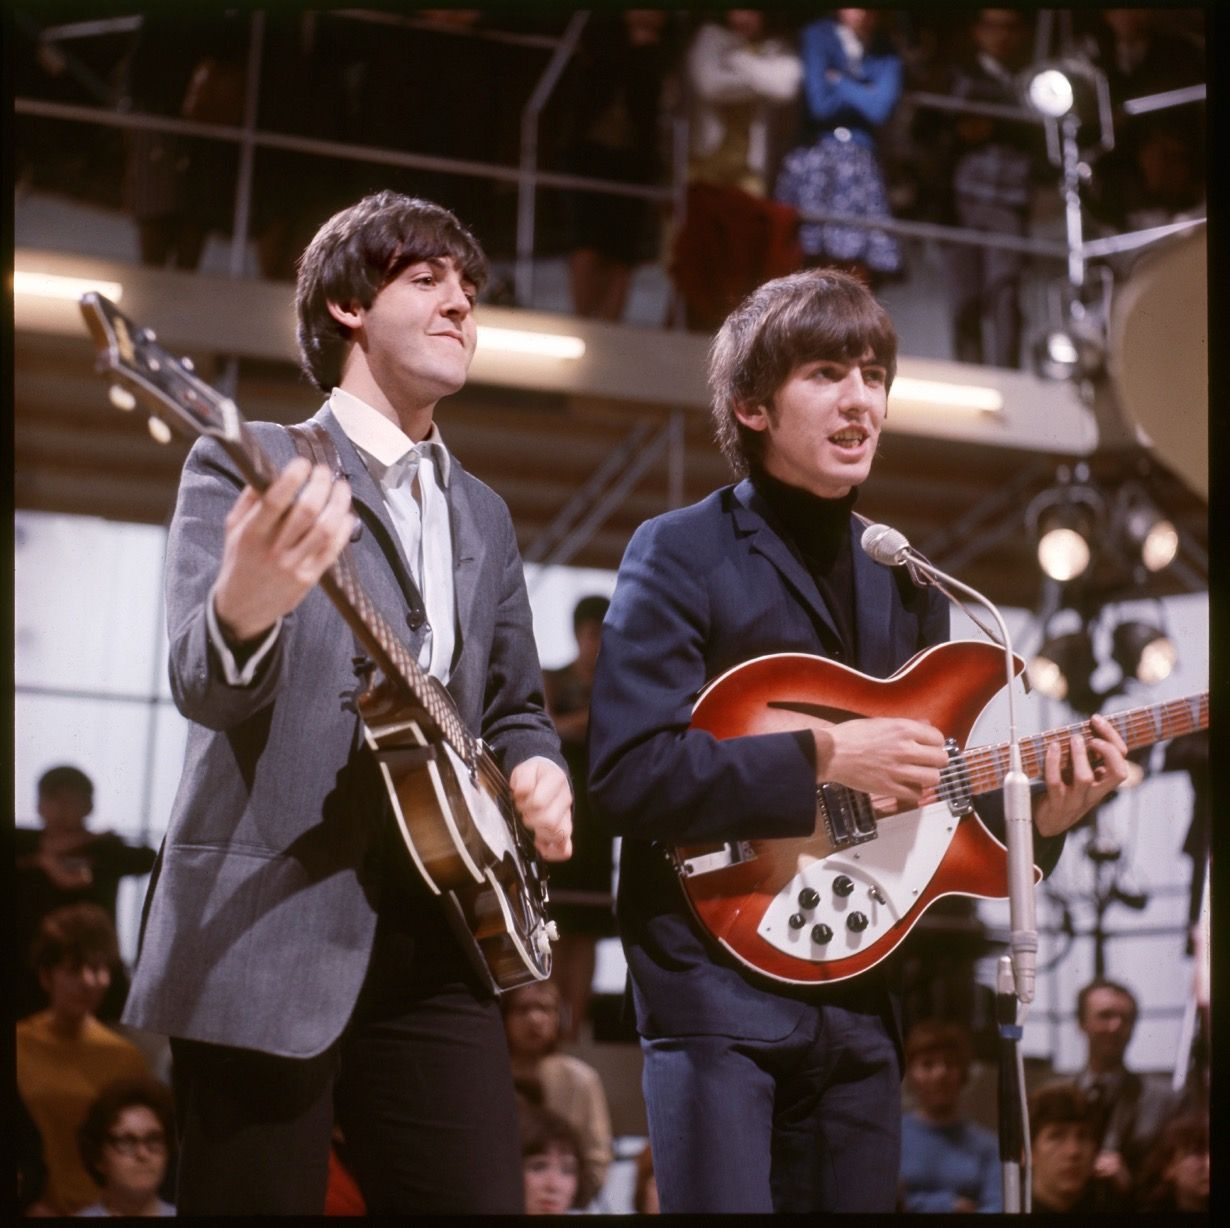 47++ Revolution music of the beatles ideas in 2021